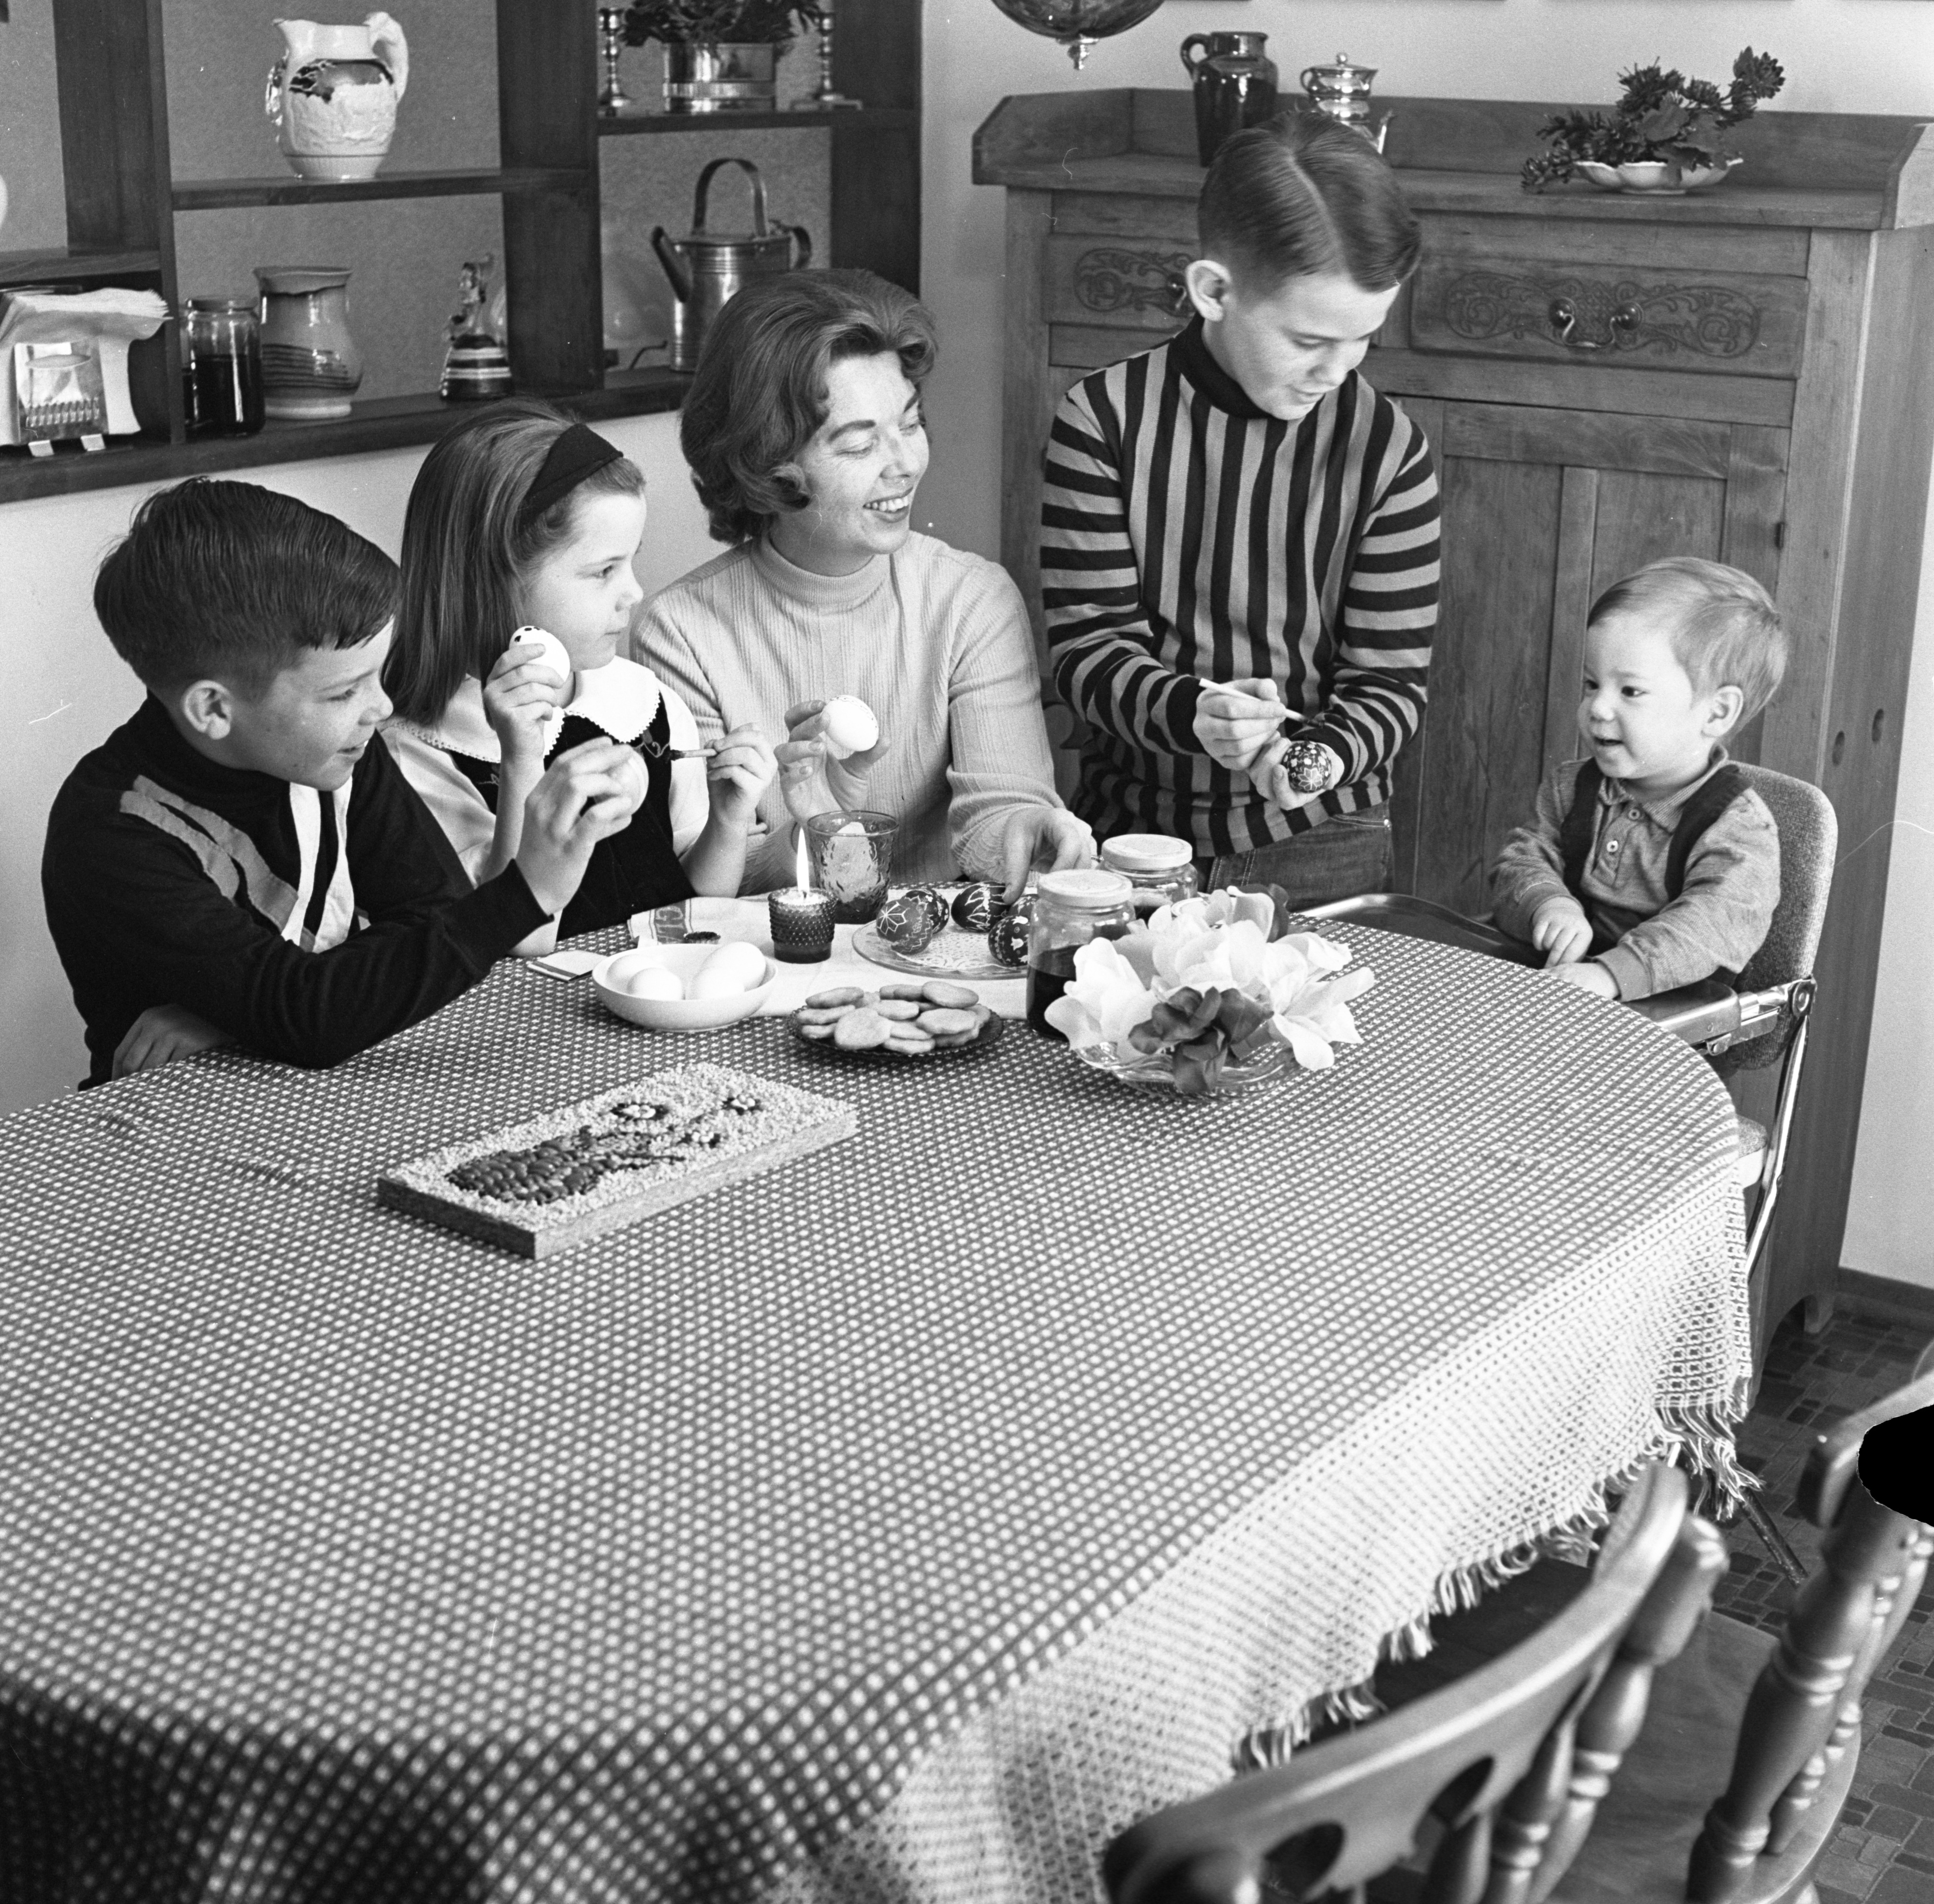 The Richard Chesbrough Family Coloring Easter Eggs, March 1967 image